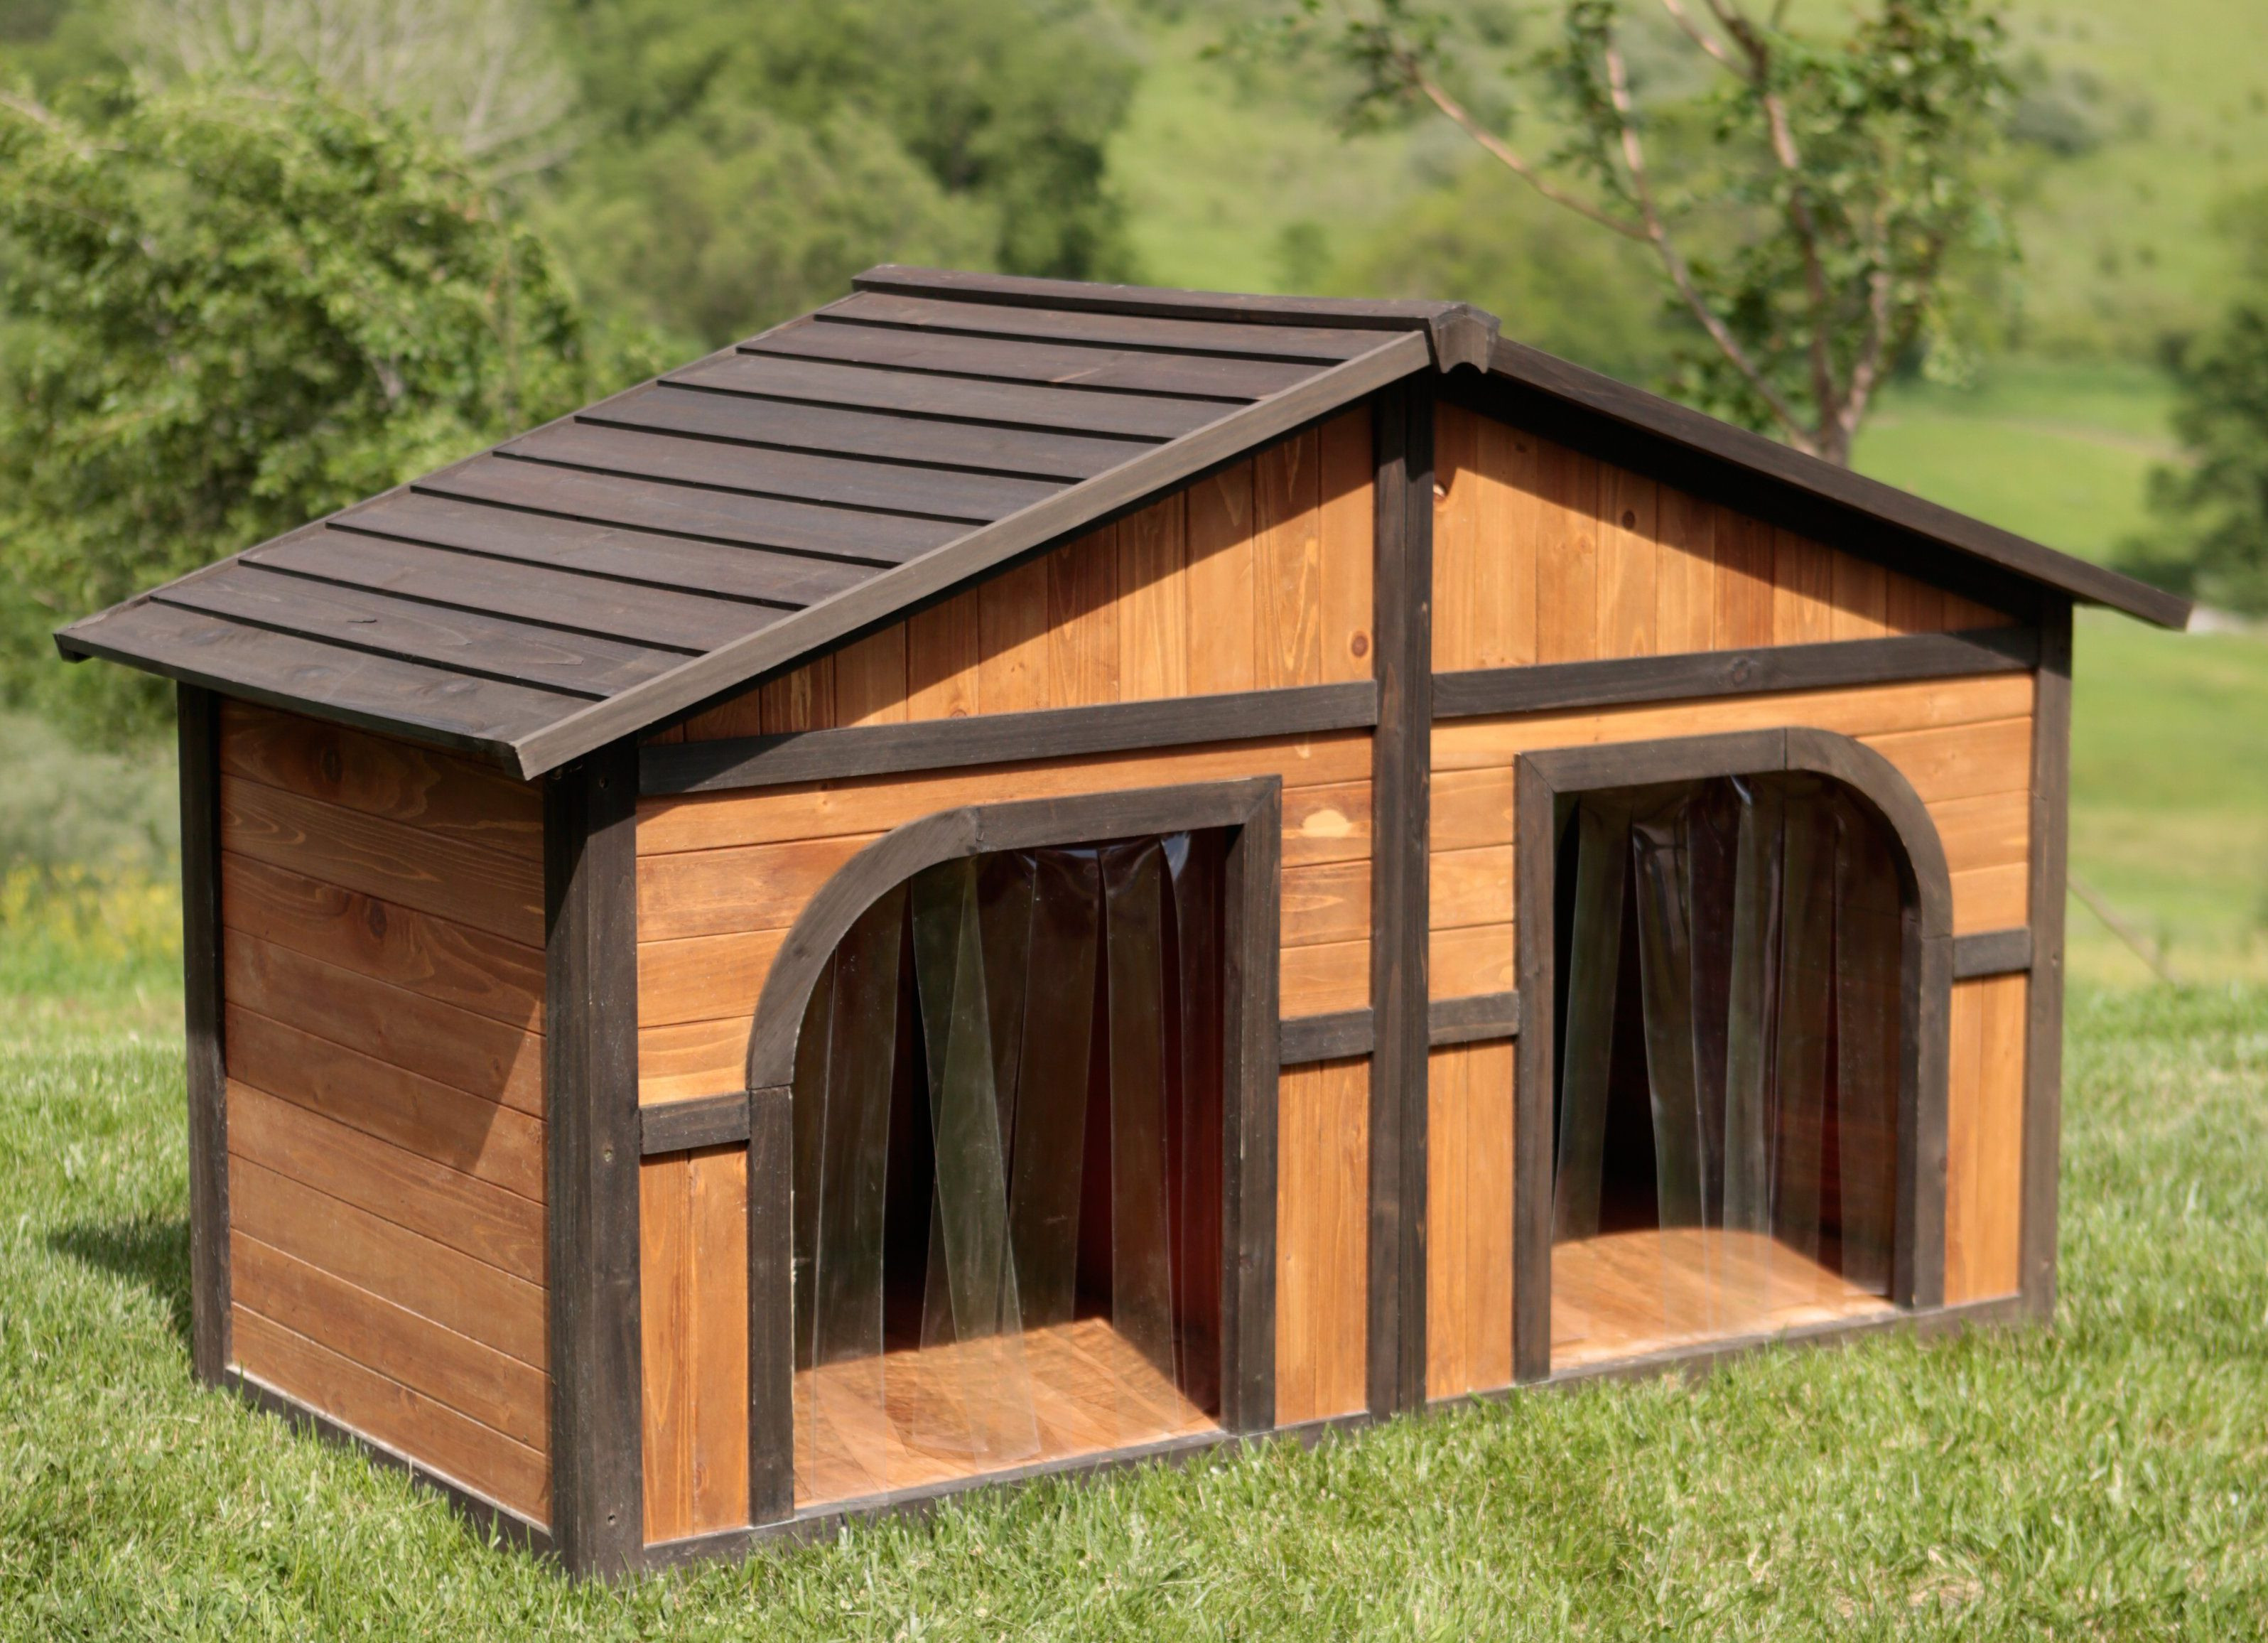 Best ideas about DIY Dog House Ideas . Save or Pin 10 Simple But Beautiful DIY Dog House Designs That You Can Now.